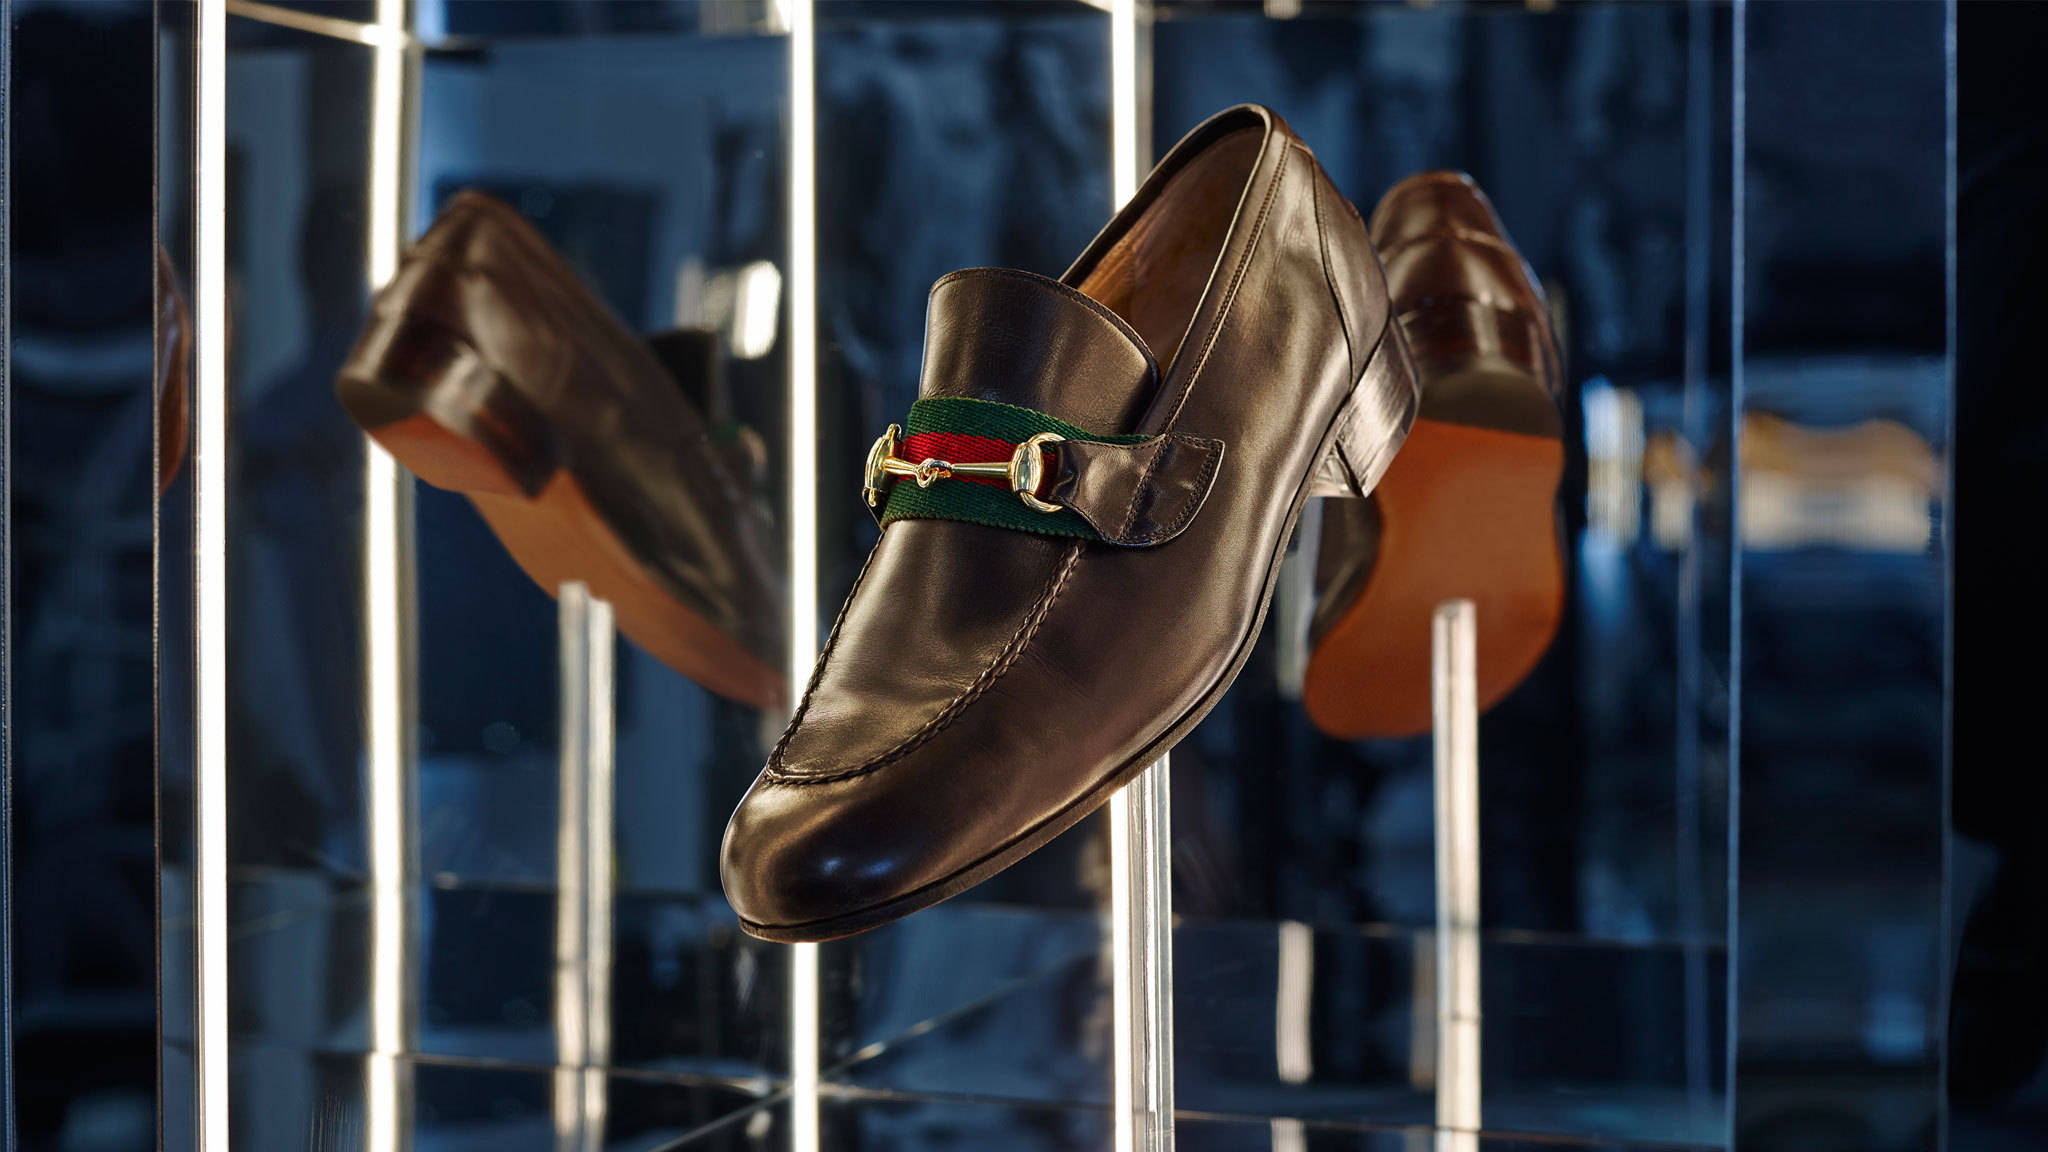 01-0030_Gucci_Museo_VERS_2_DETAIL_PAGE